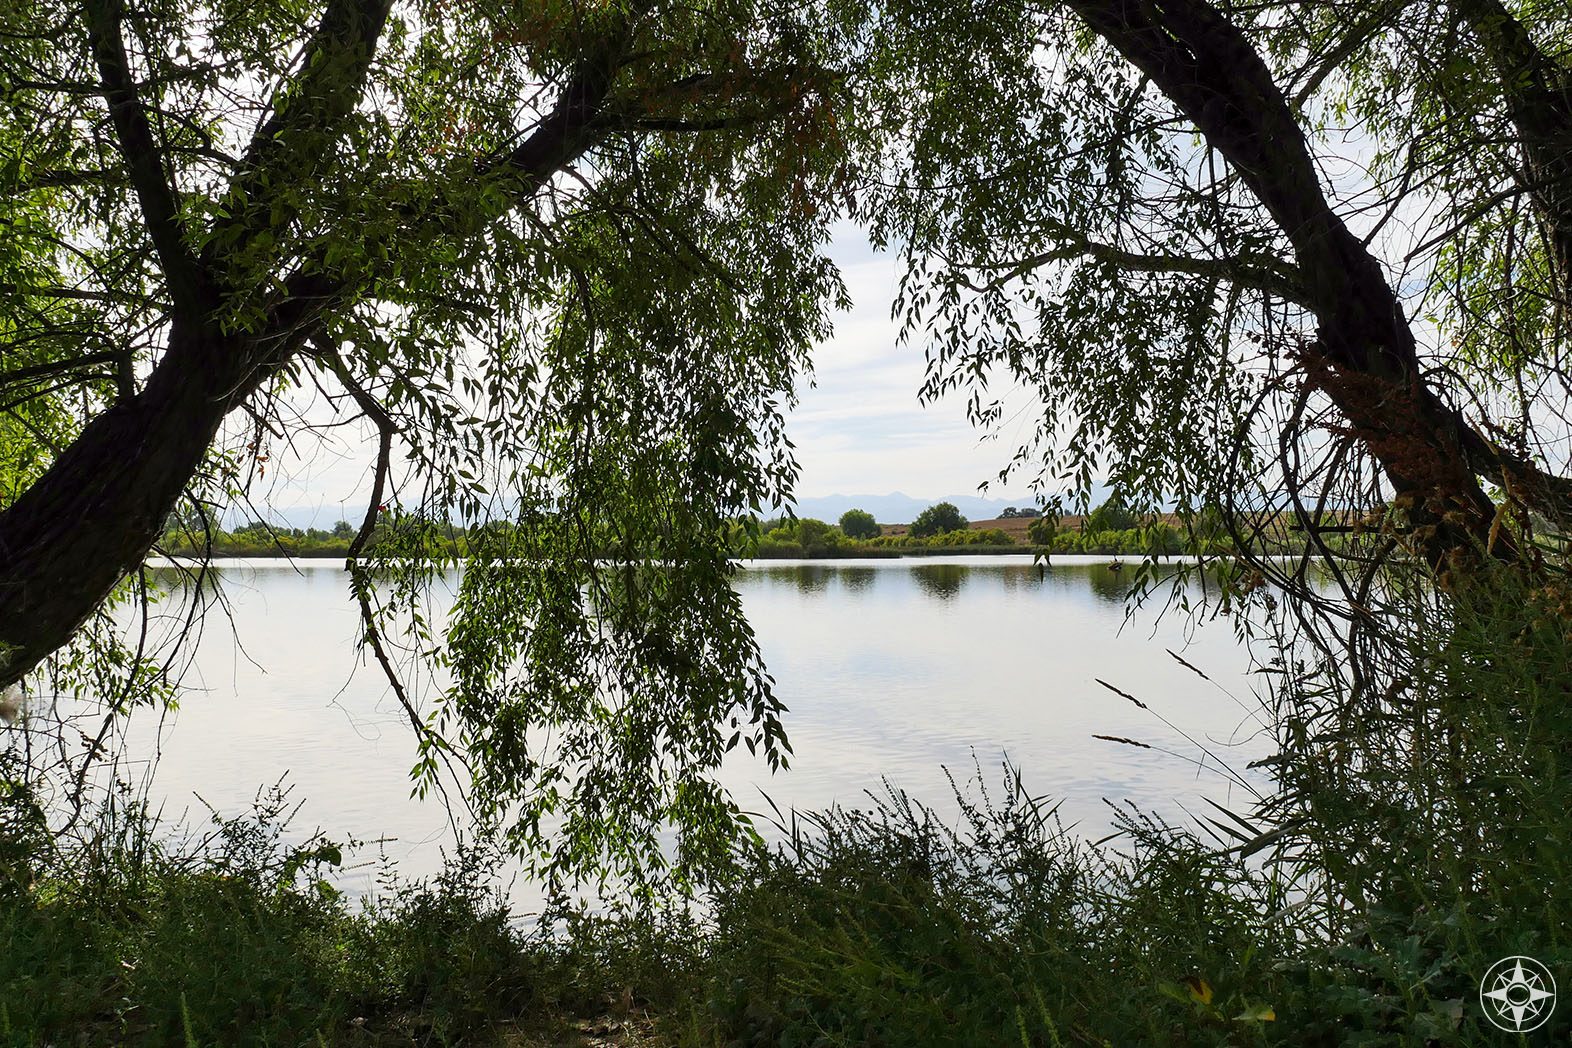 View through the trees of Pelican Pond in St Vrain State Park